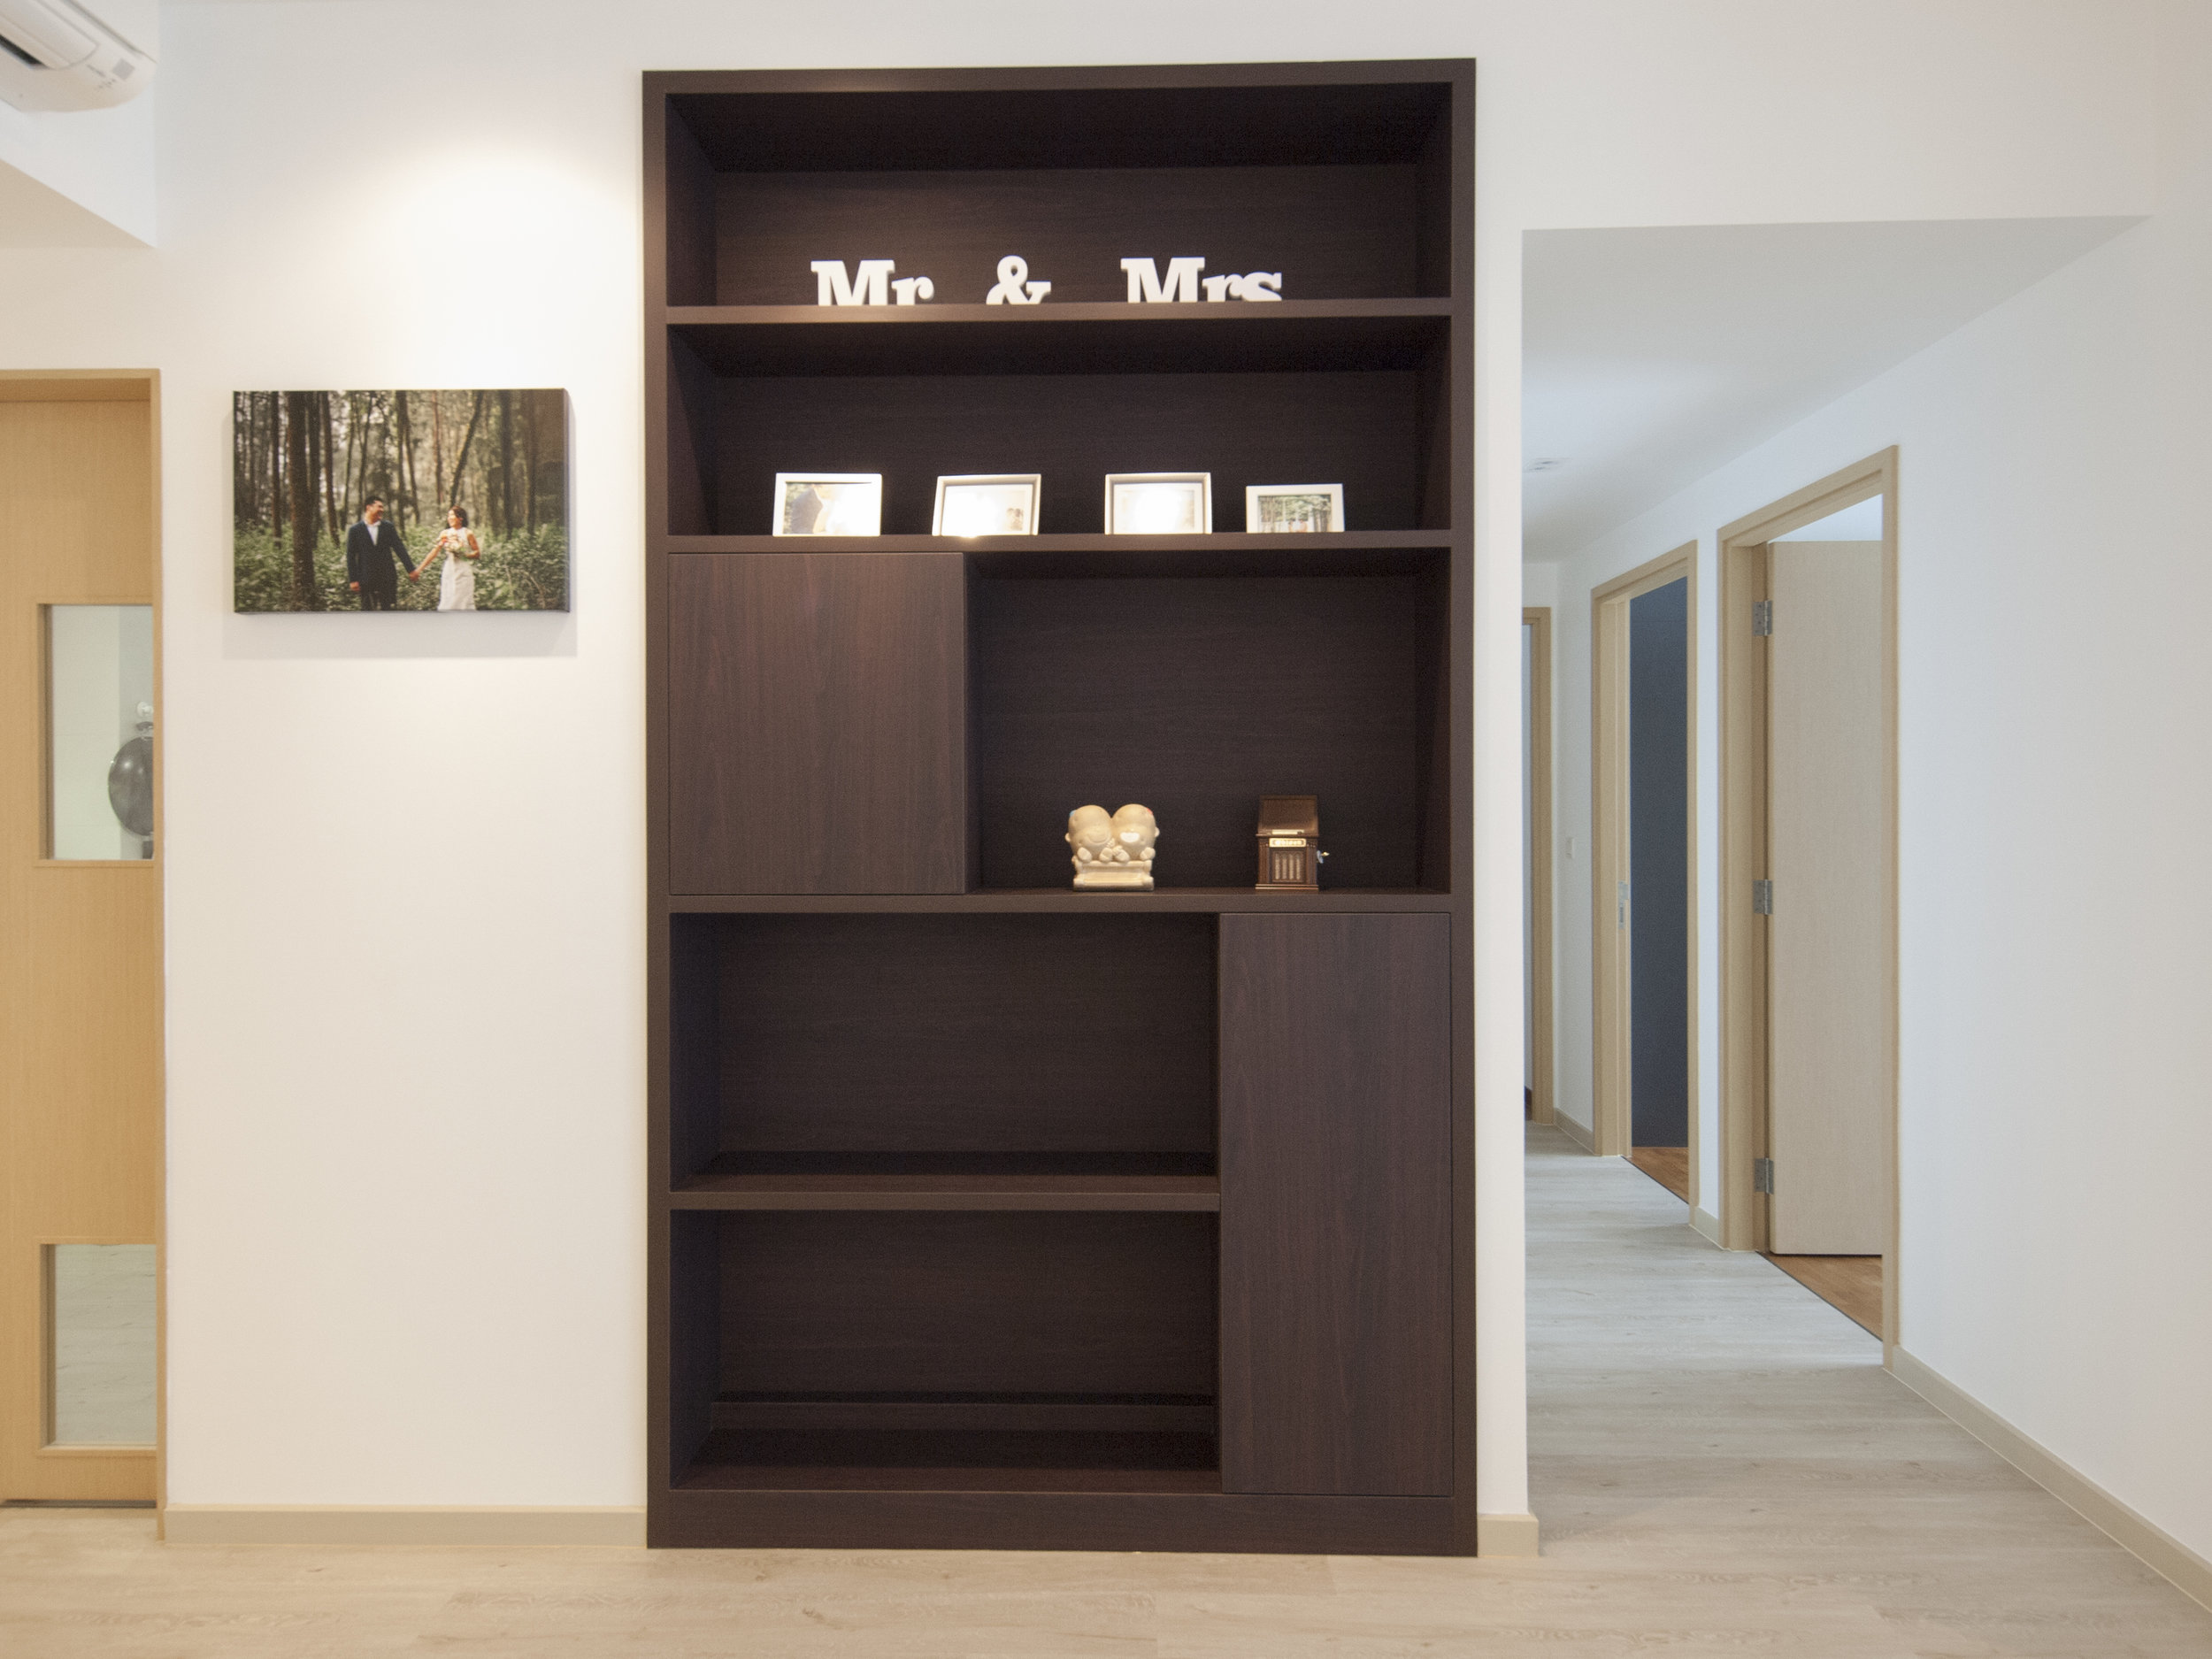 A large space was originally designated for the DB Box and modem.  To optimise the use of space, this was transformed into a shelving cabinet for storage and display, concealing a good amount of electrical trunking and other electrical components while acting as a feature piece.